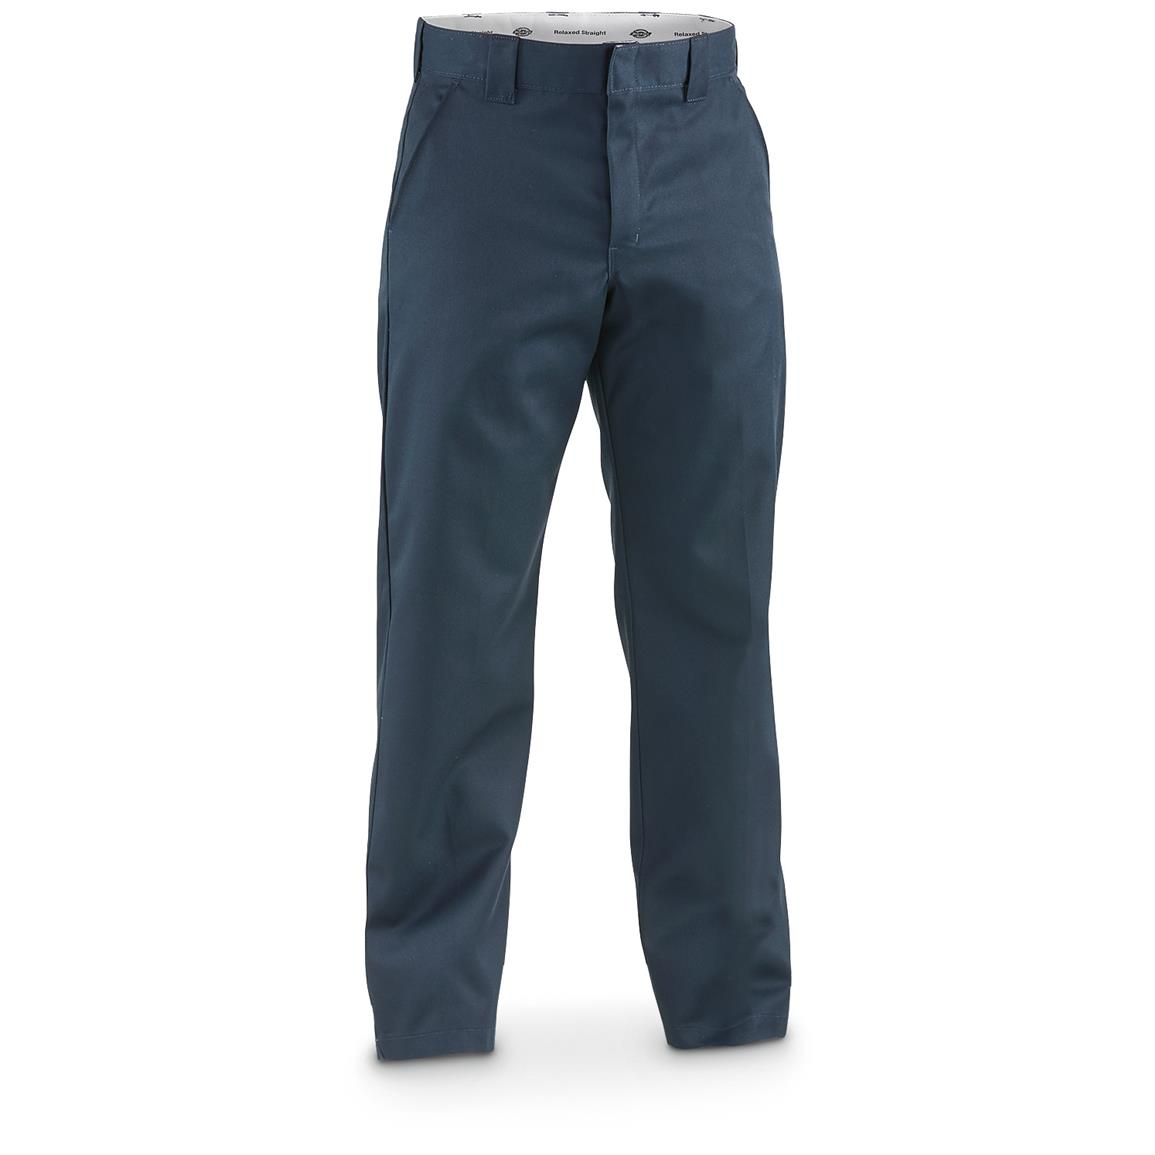 Dickies Men's Relaxed Fit Pants